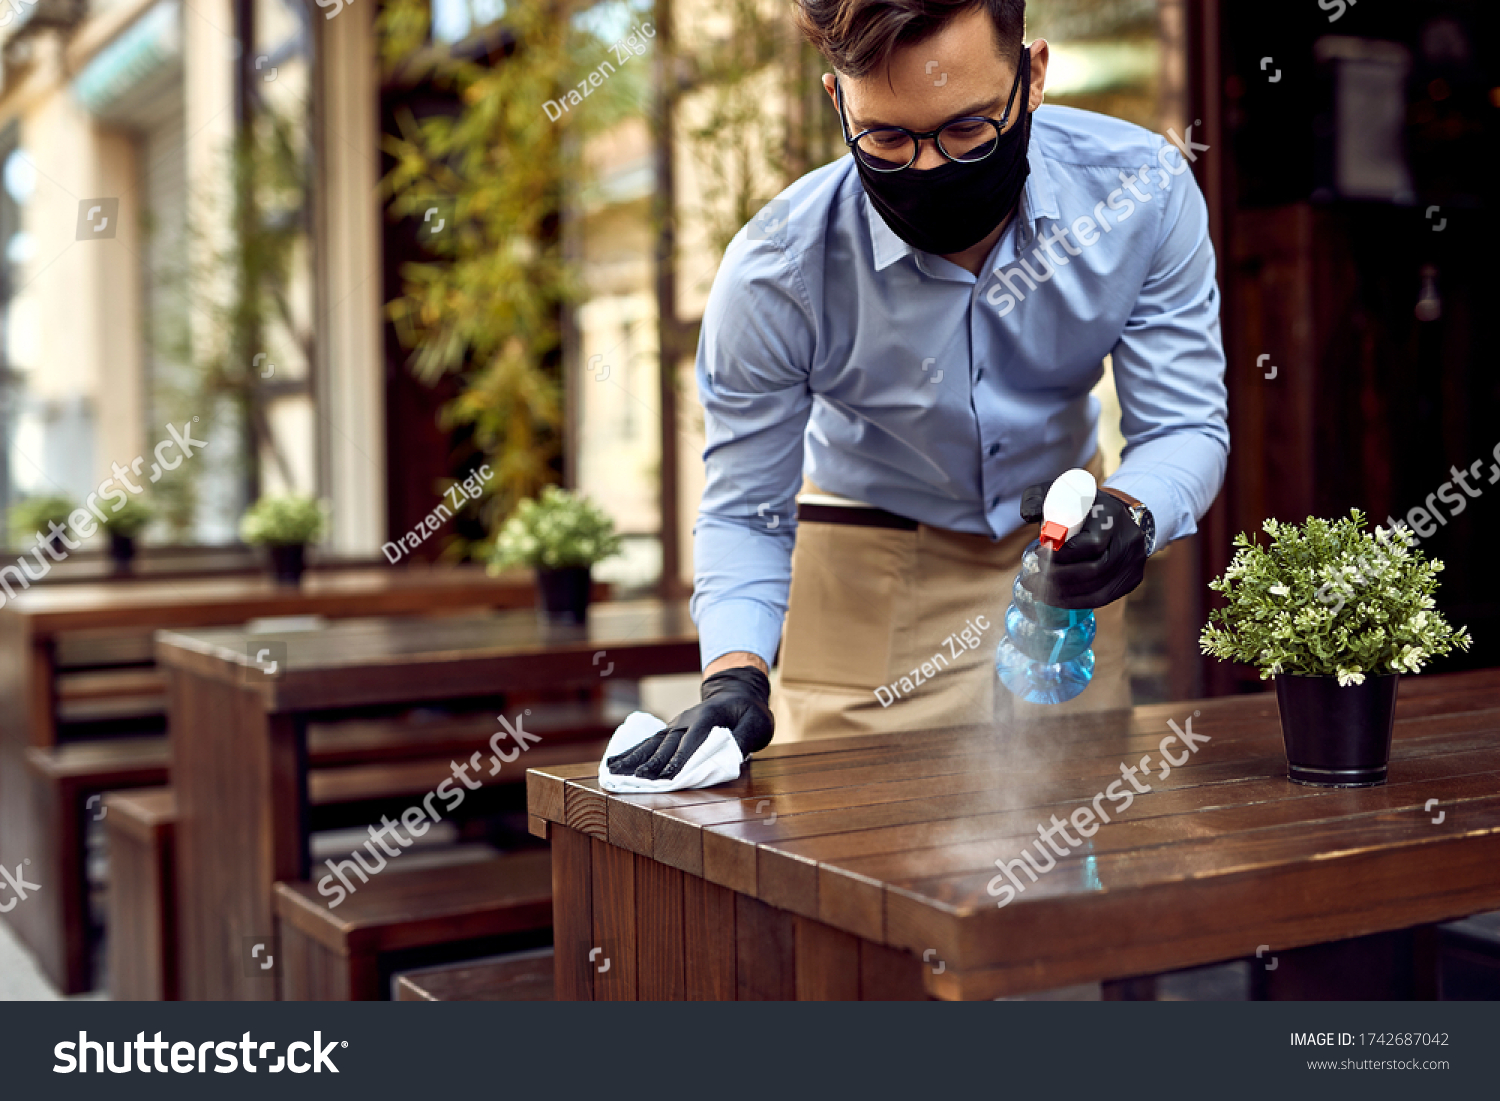 Waiter wearing protective face mask while disinfecting tables at outdoor cafe. #1742687042